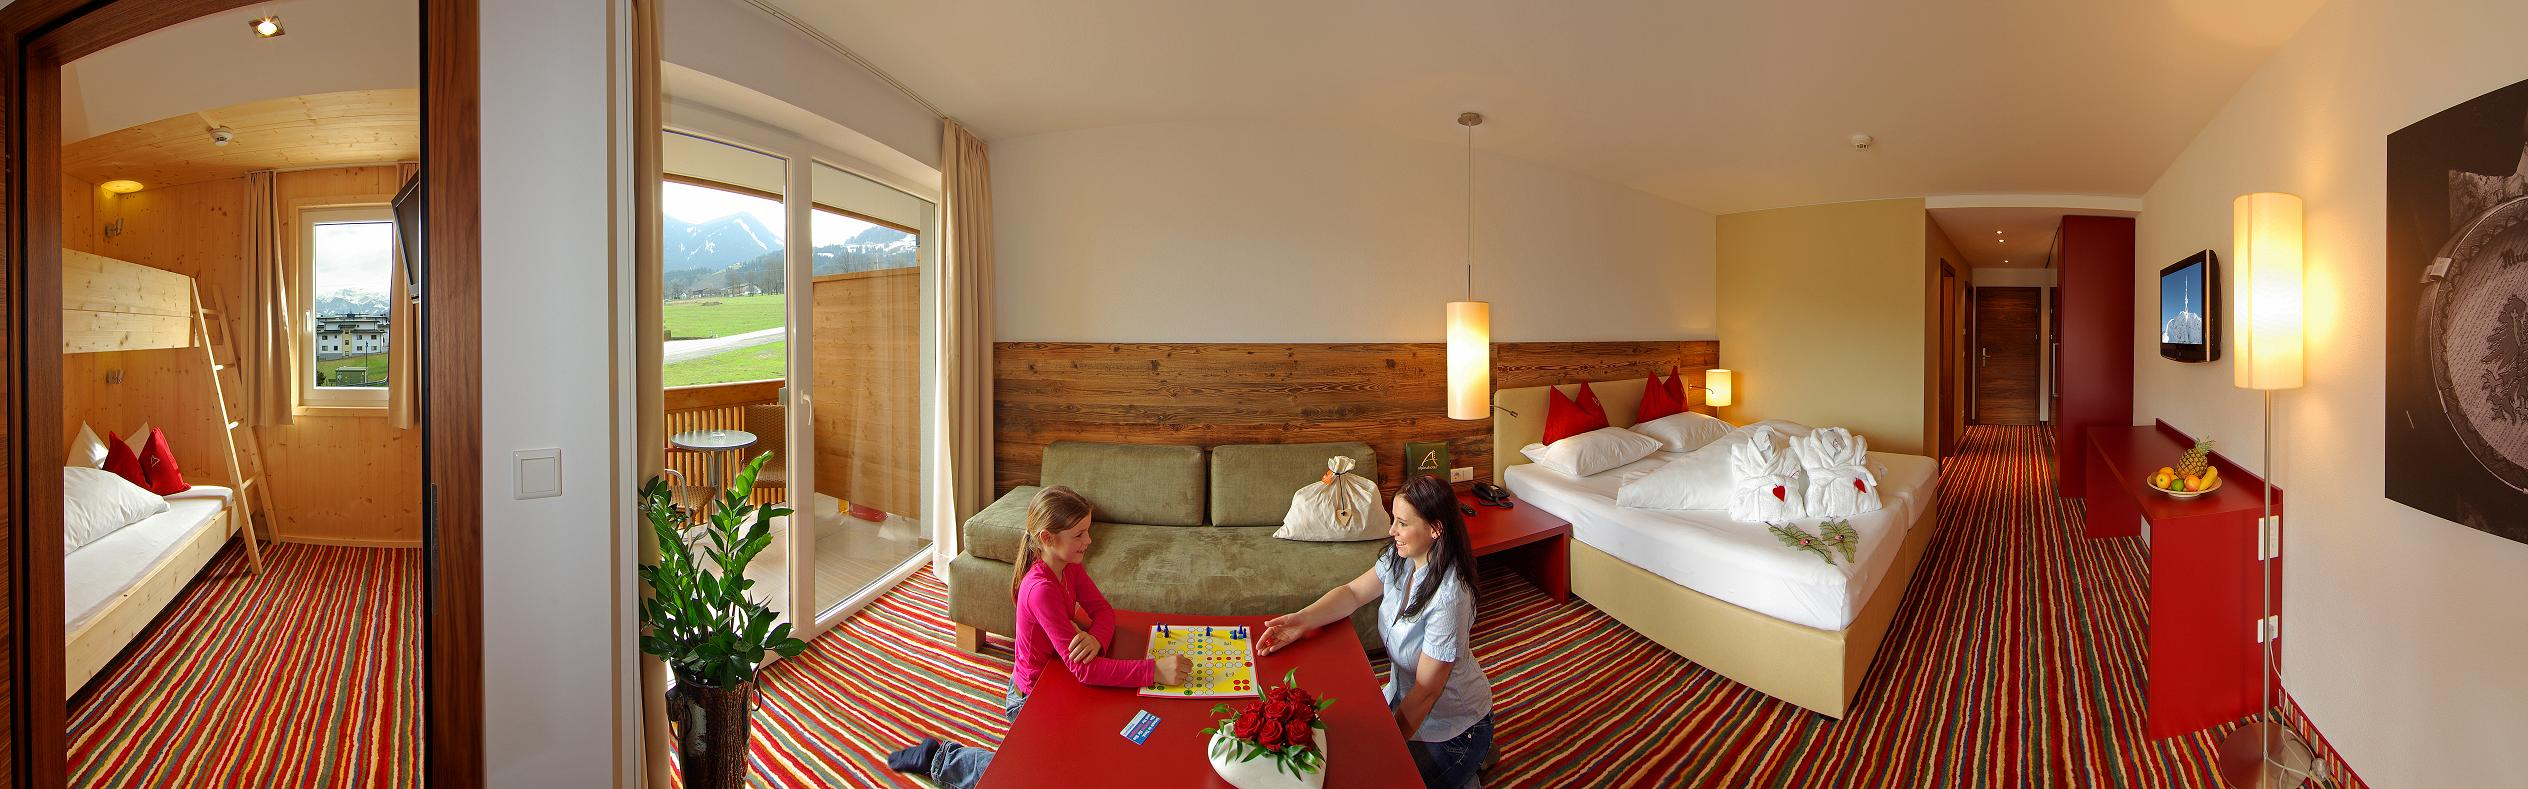 alpinahotel-Junior-Suite Premium